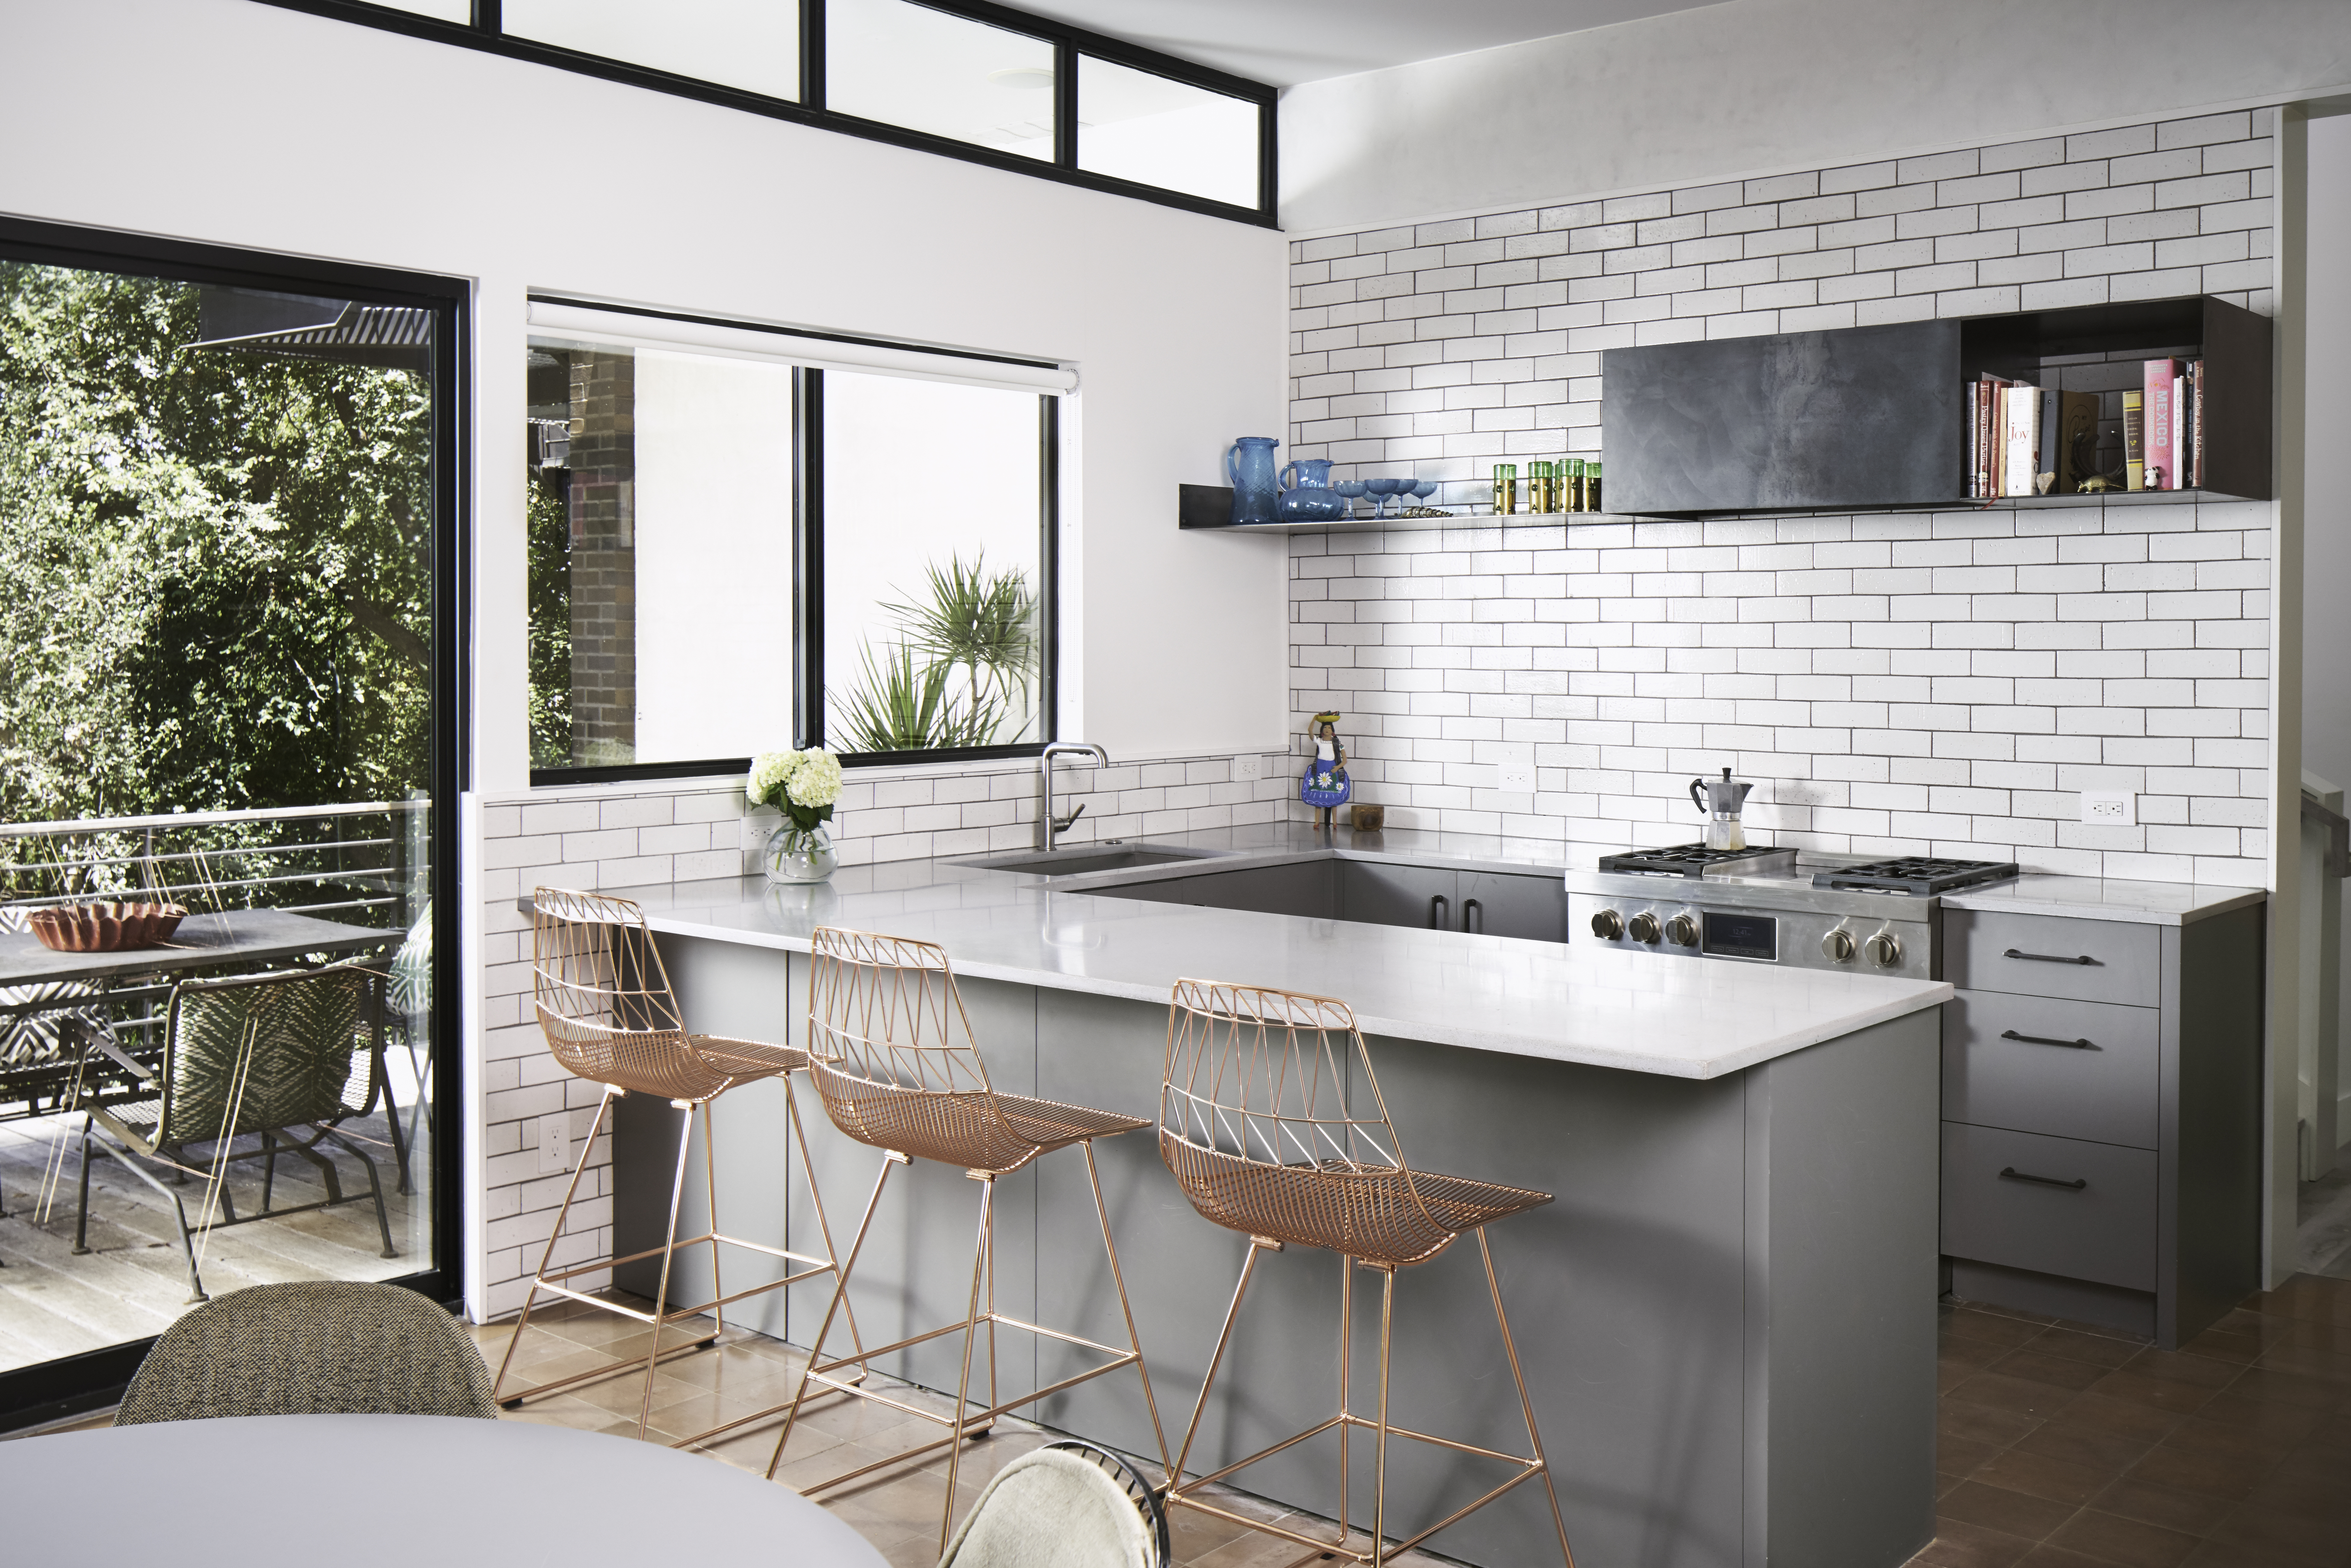 Keeping your home updated makes it more enjoyable to live in now, and if you decide to move, more marketable. While completely remodeling your kitchen and bathrooms are obvious options, as are large projects like whole-home makeovers, other improvements can also make it more livable and valuable.